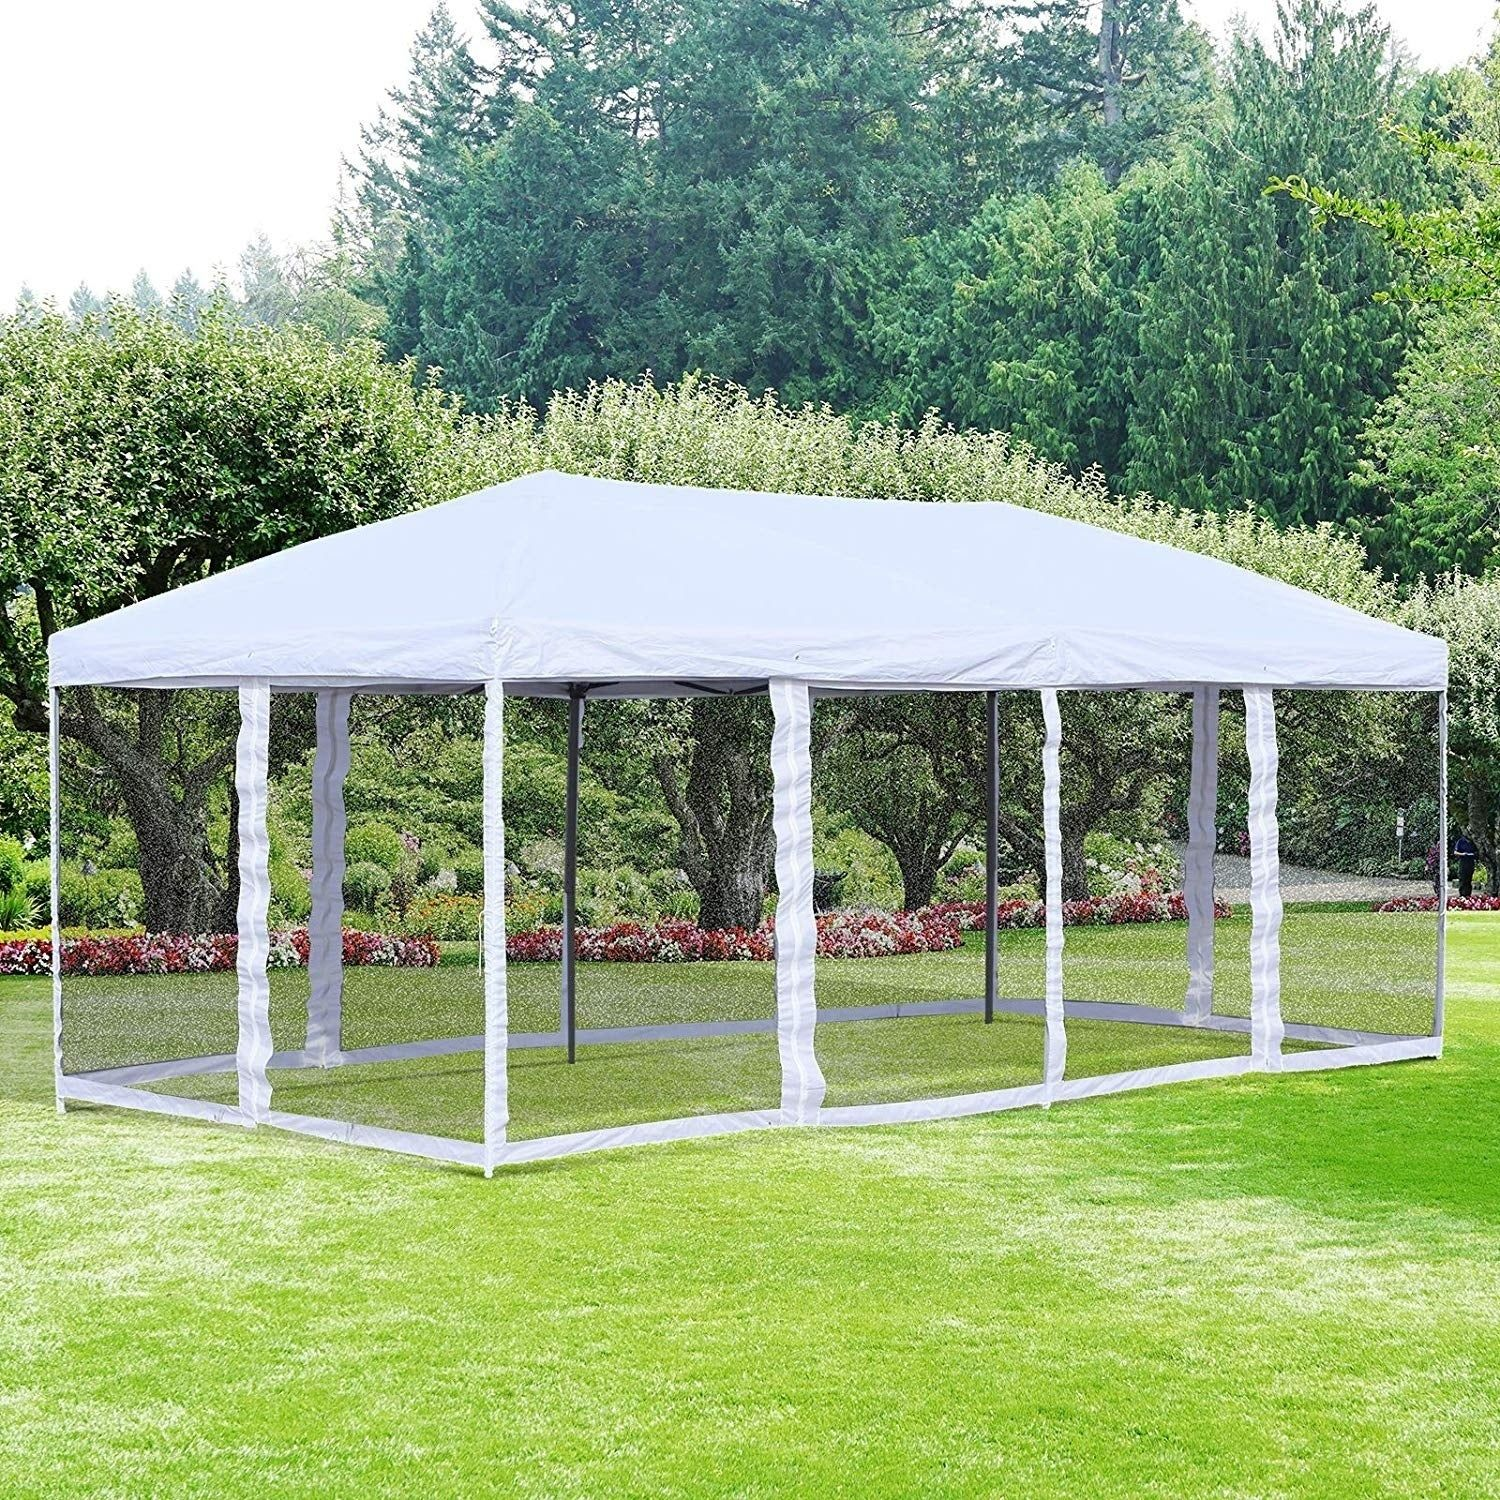 Outsunny 10 X 20 Easy Pop Up Canopy Party Tent With 6 Removable Mesh Sidewalls Cream White Steel Patio Gazebo Gazebo Canopy Tent